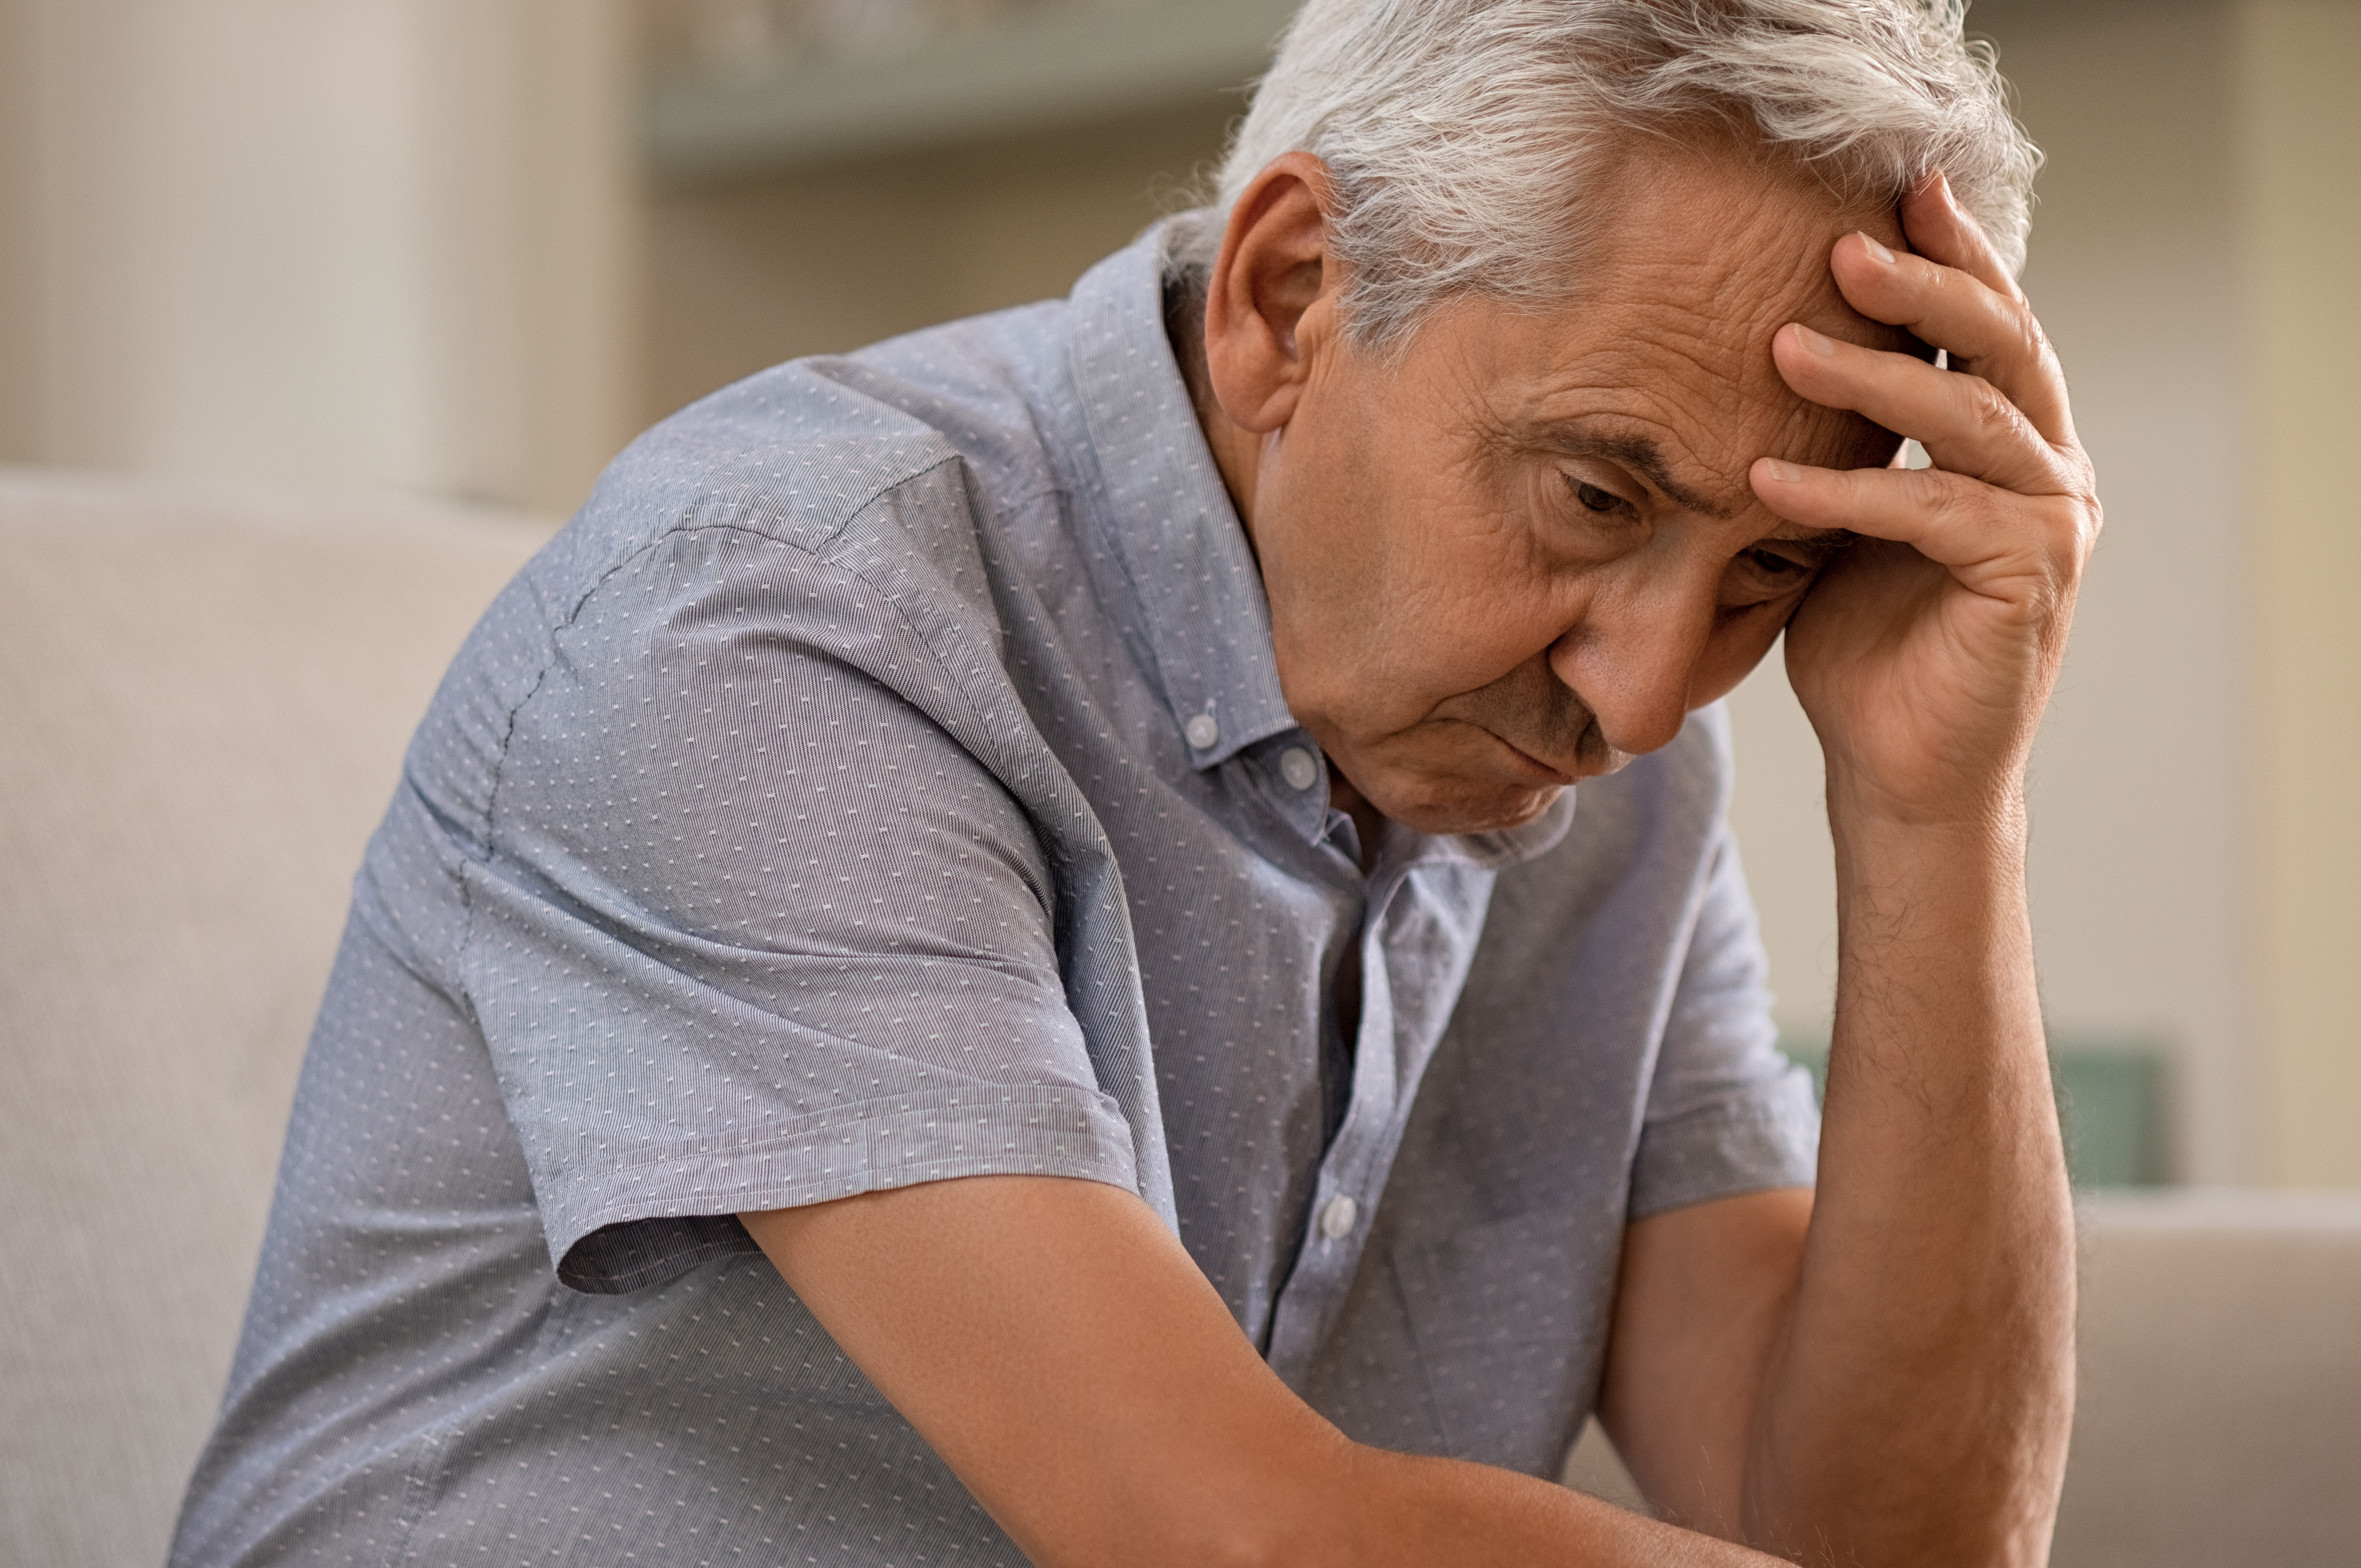 Thoughtful senior man sitting on couch. Depressed sad man sitting with hand on head thinking while looking away.